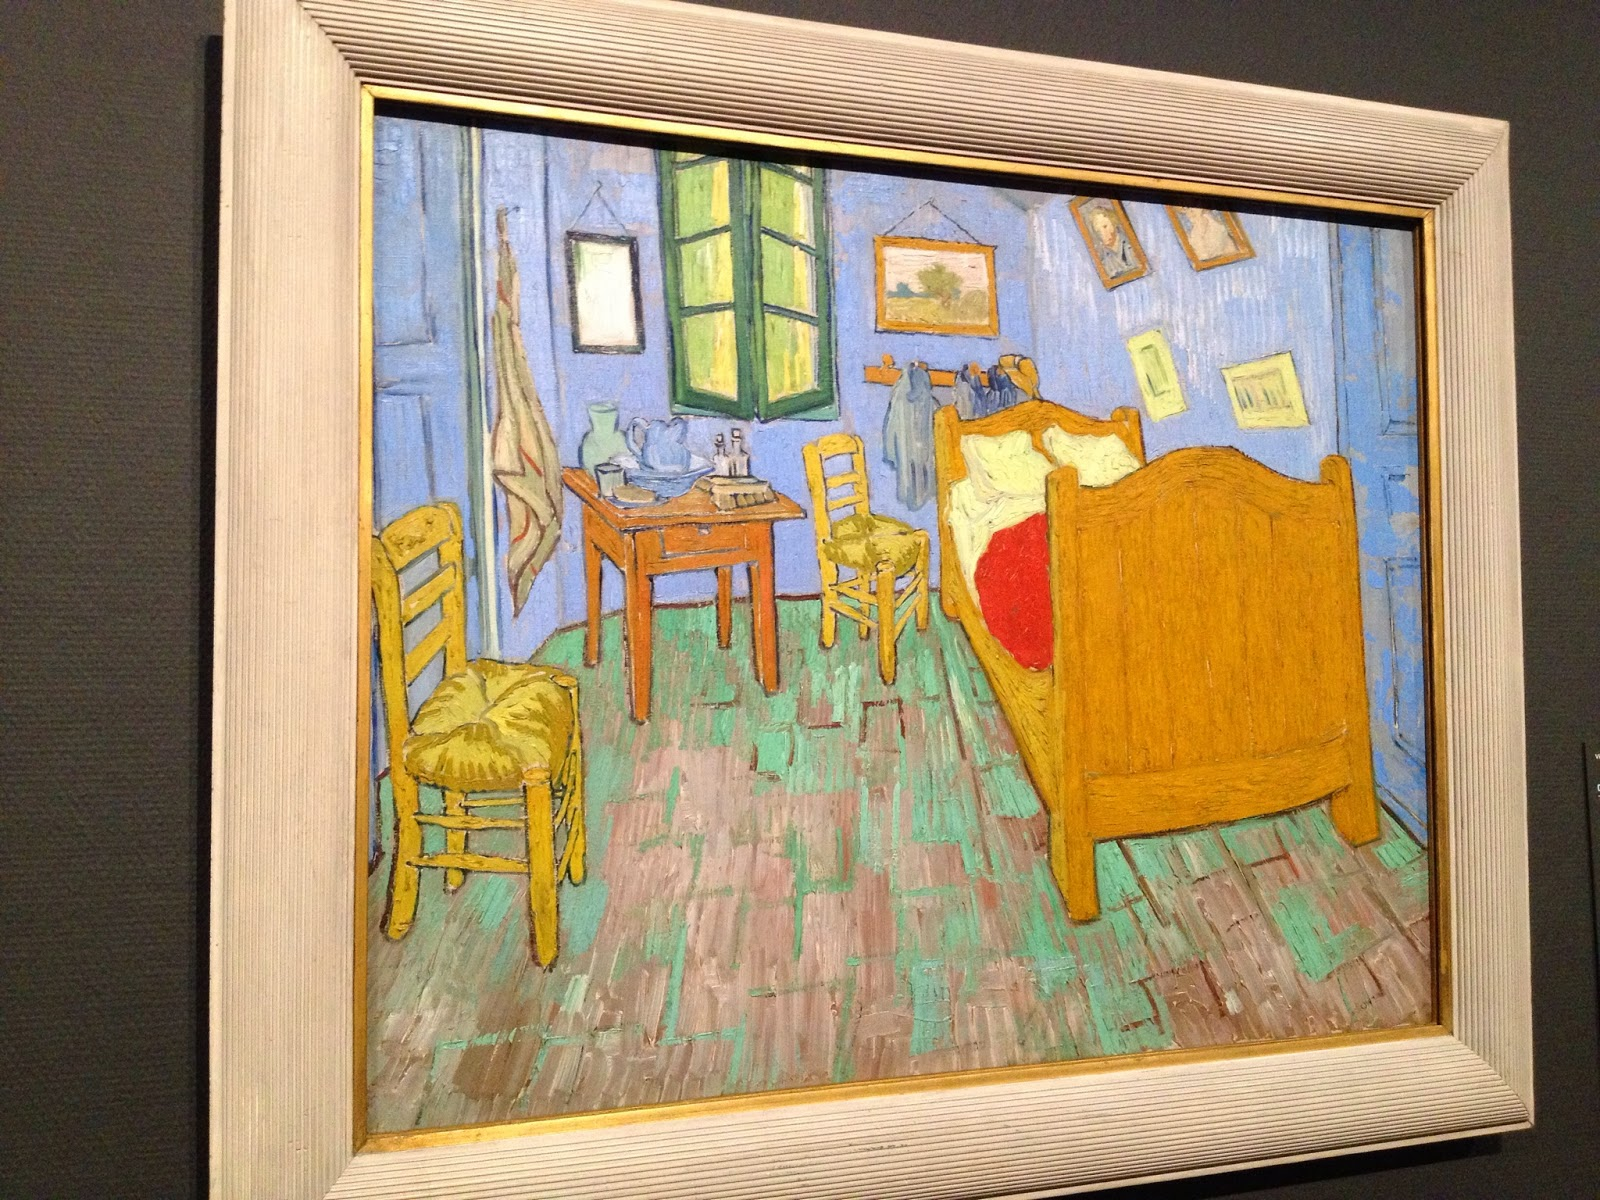 Amsterdam - One of 3 versions of Van Gogh's Vincent's Bedroom in Arles